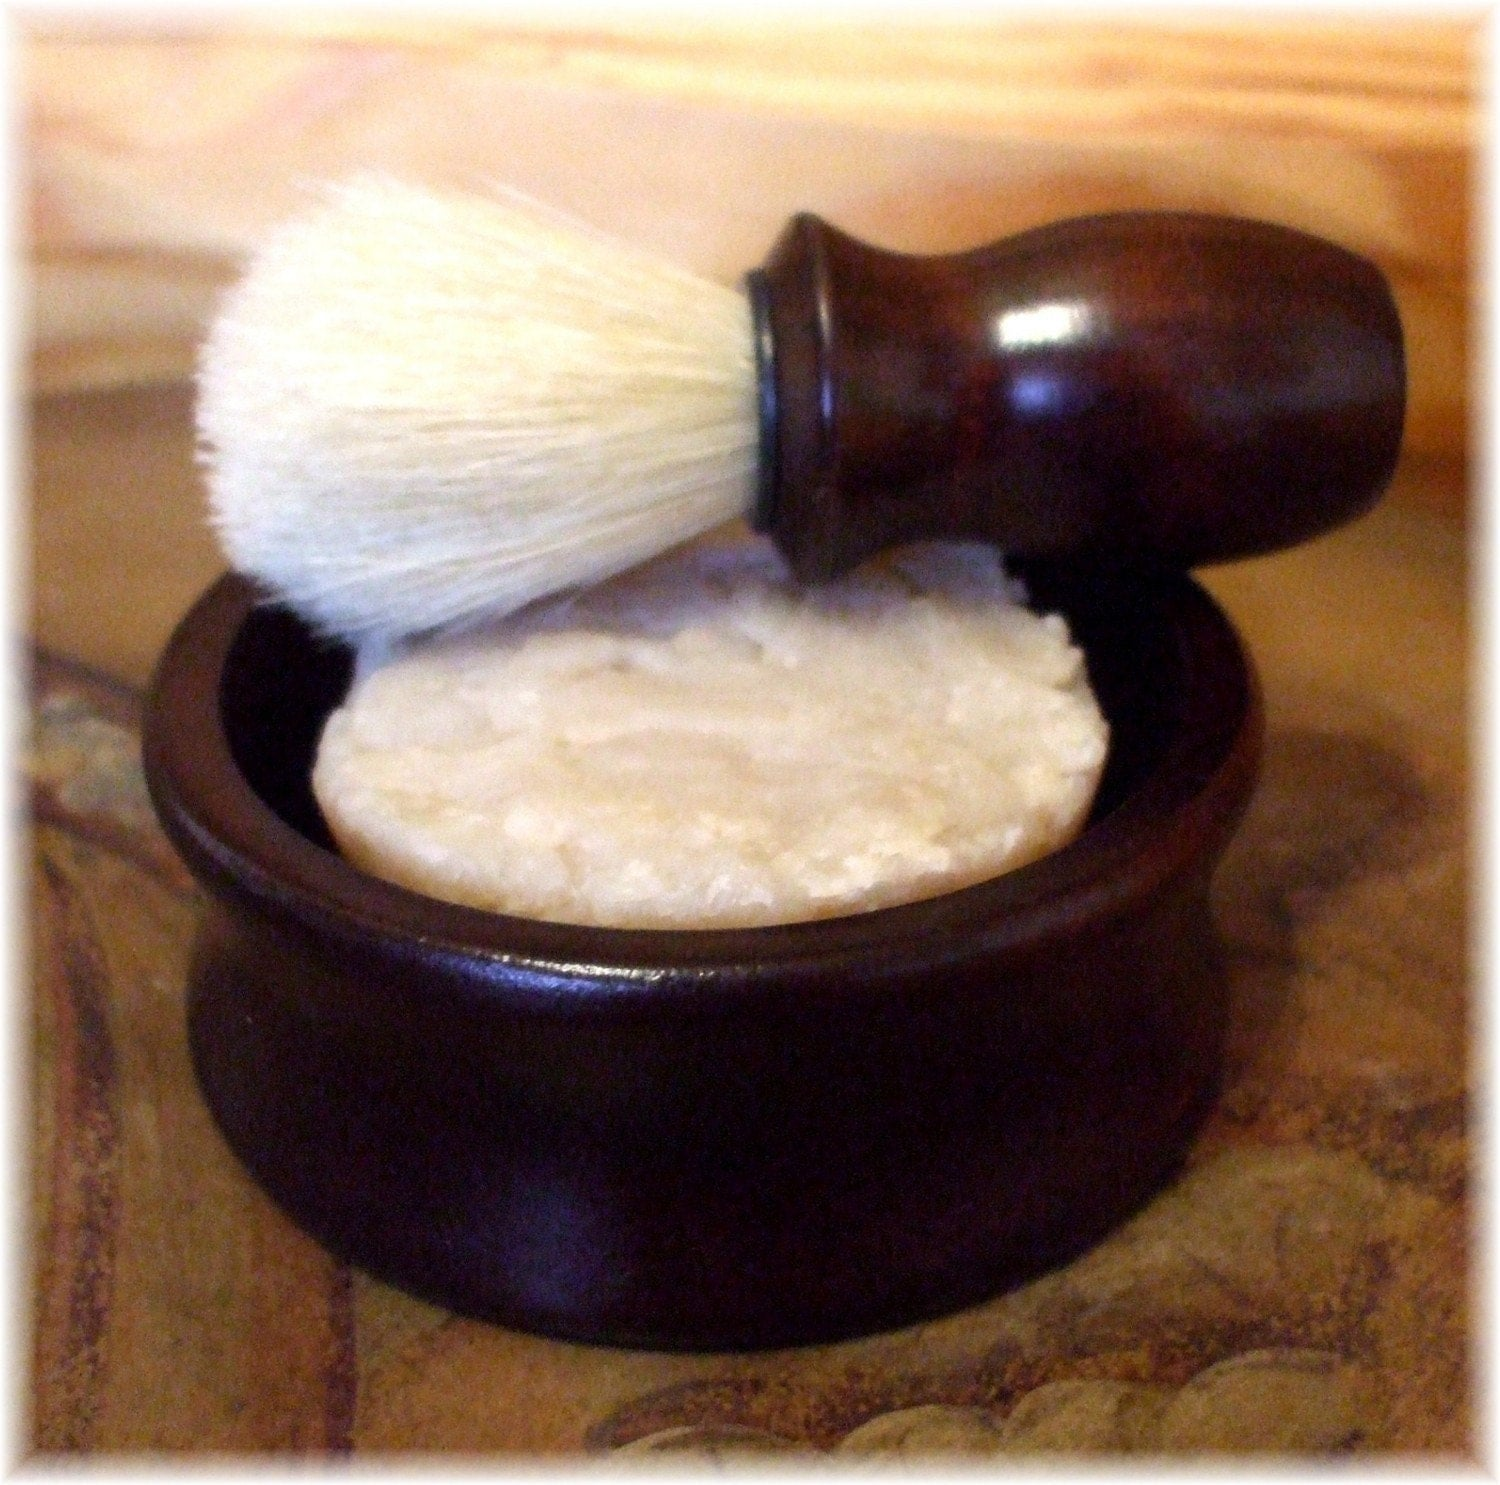 A  Classic Shaving Set with Moisturizing Shave Soap, Boar Bristle Brush and  Wood Shaving Bowl by MAN CAVE SOAPWORKS